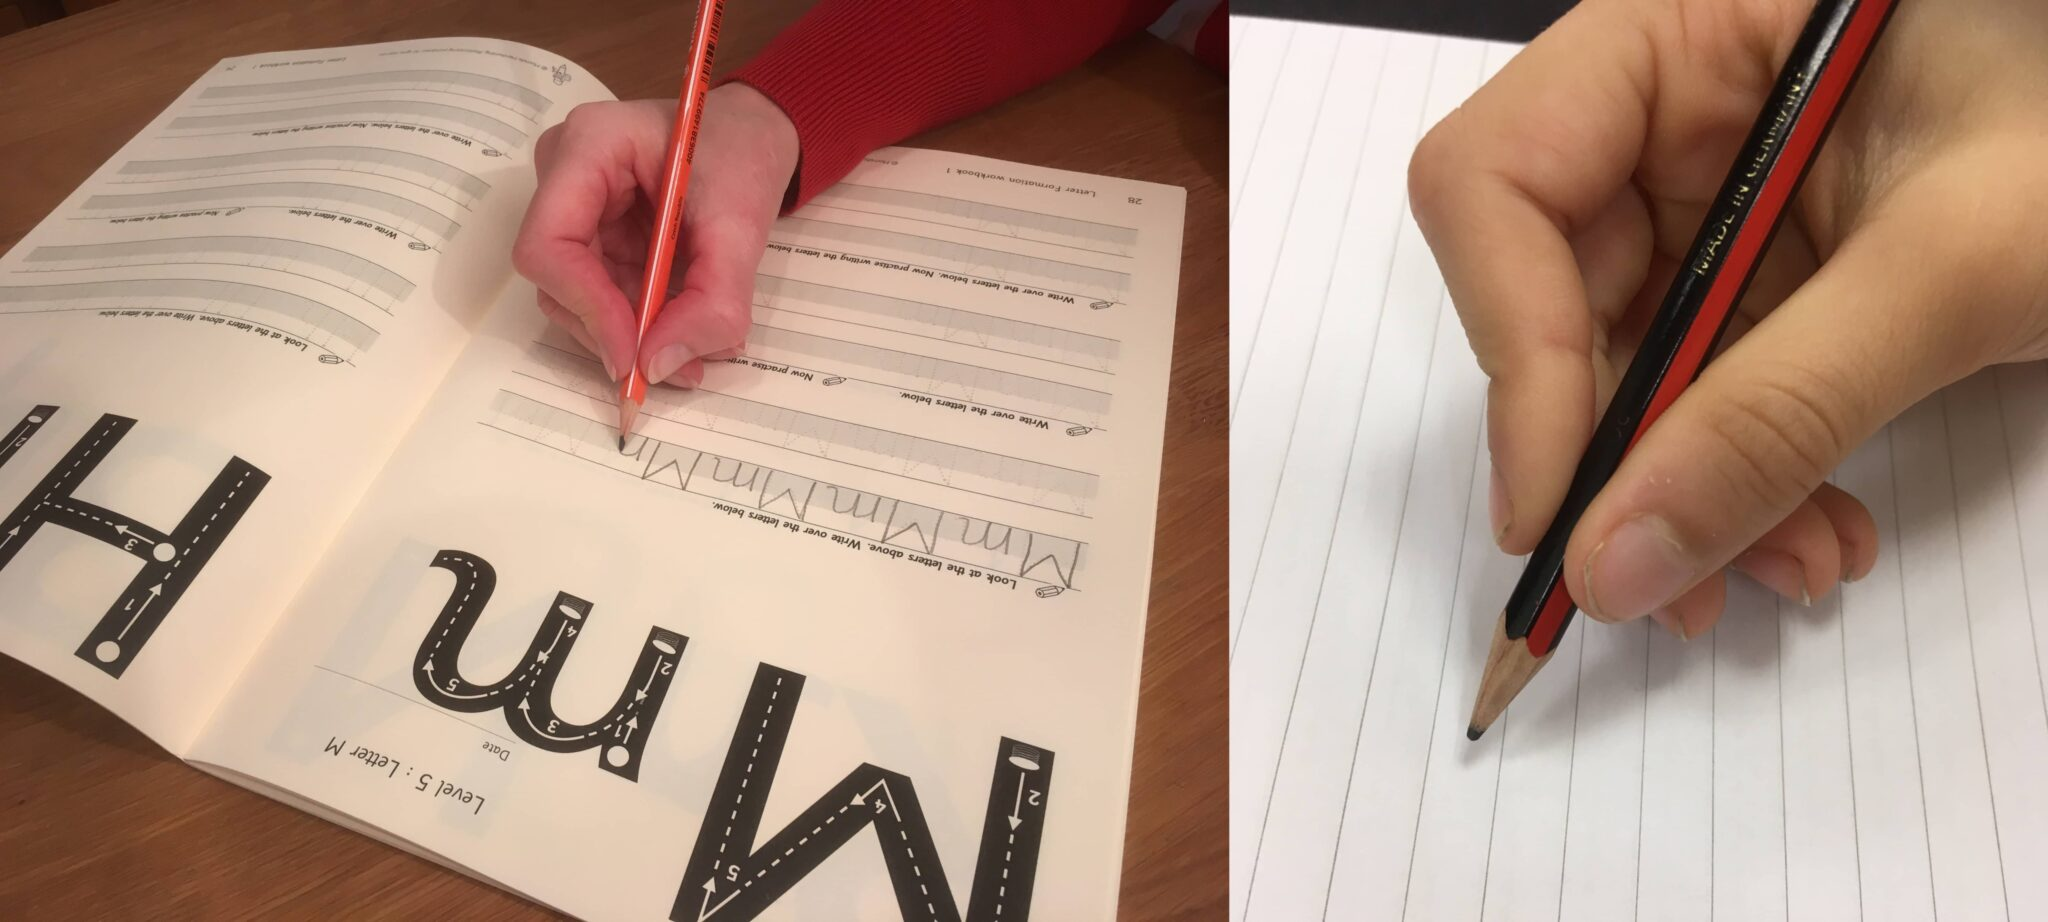 Examples of correct pencil grip